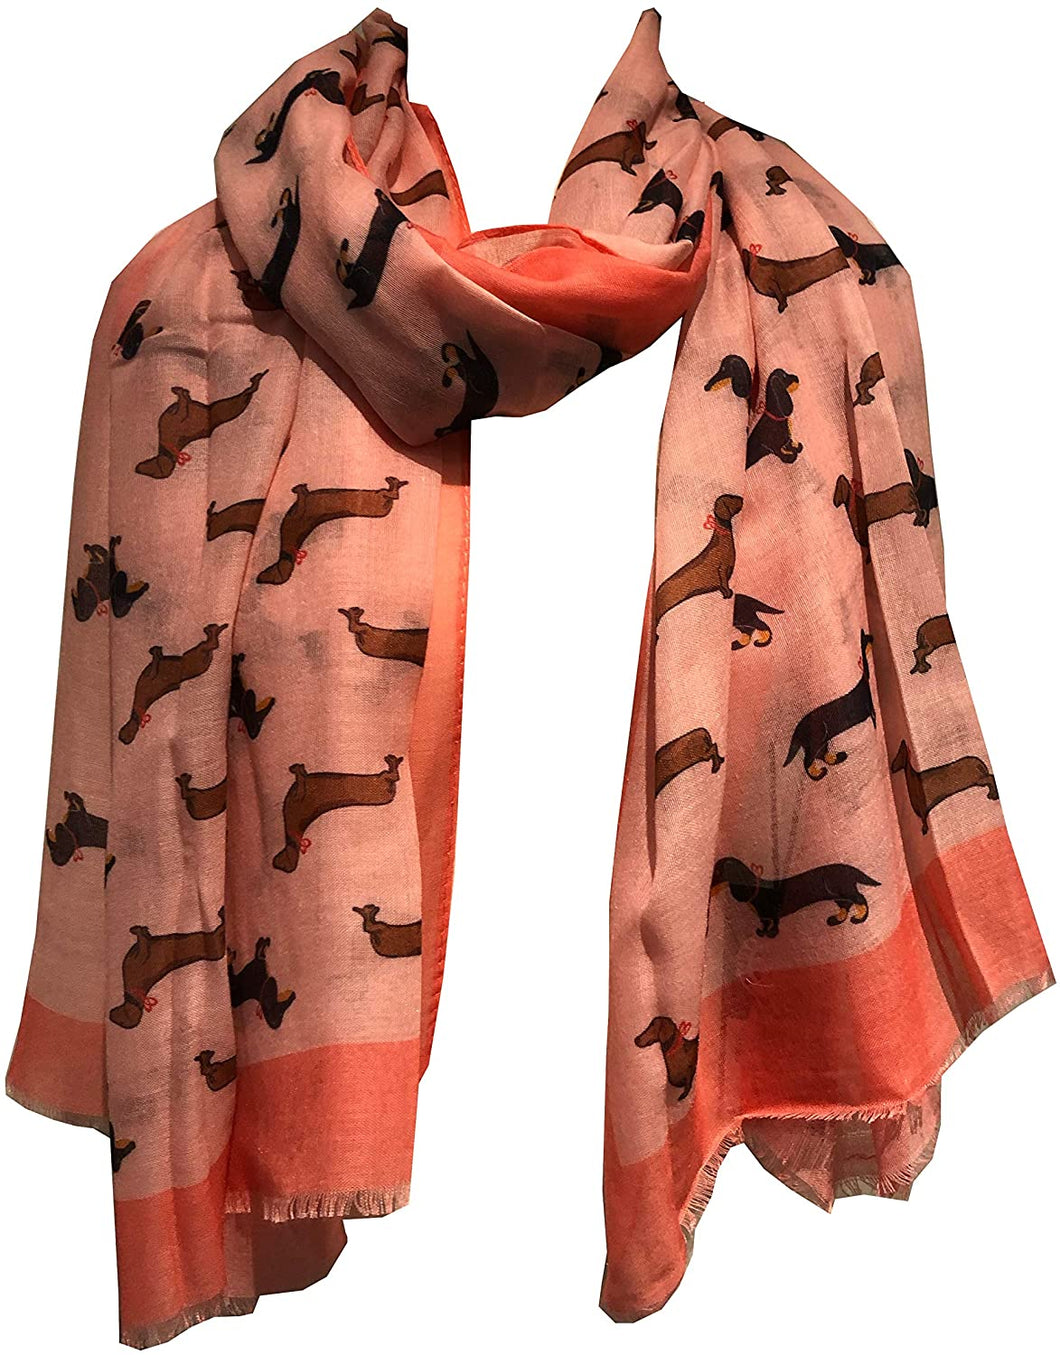 Dachshund dog with bow ladies long scarf/wrap with frayed edge. Great for presents/gifts